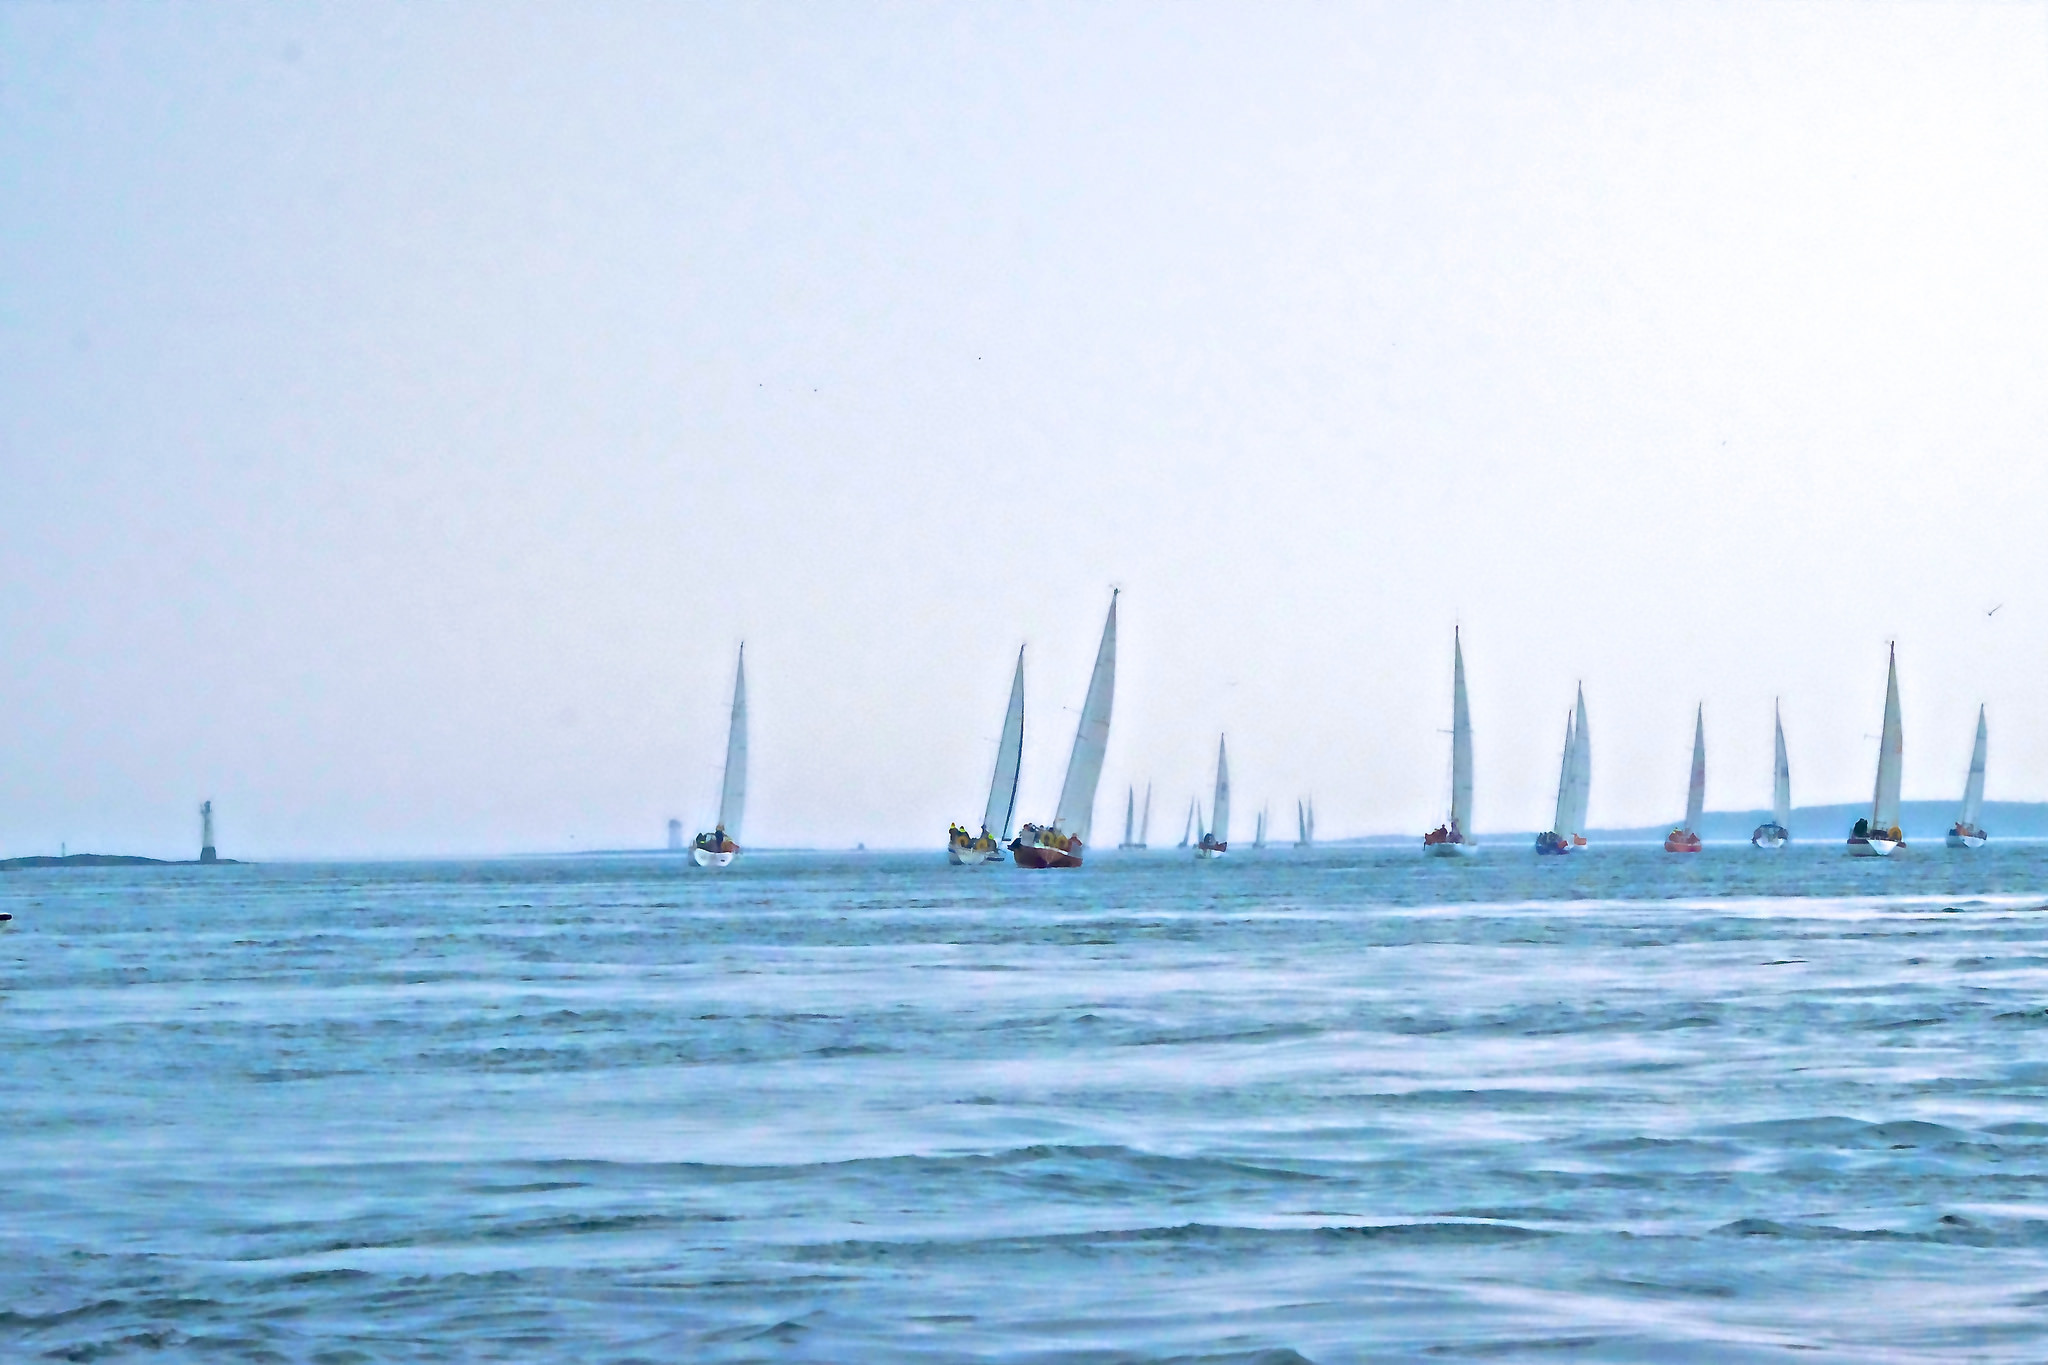 Bar Buoy Yacht Race 2015